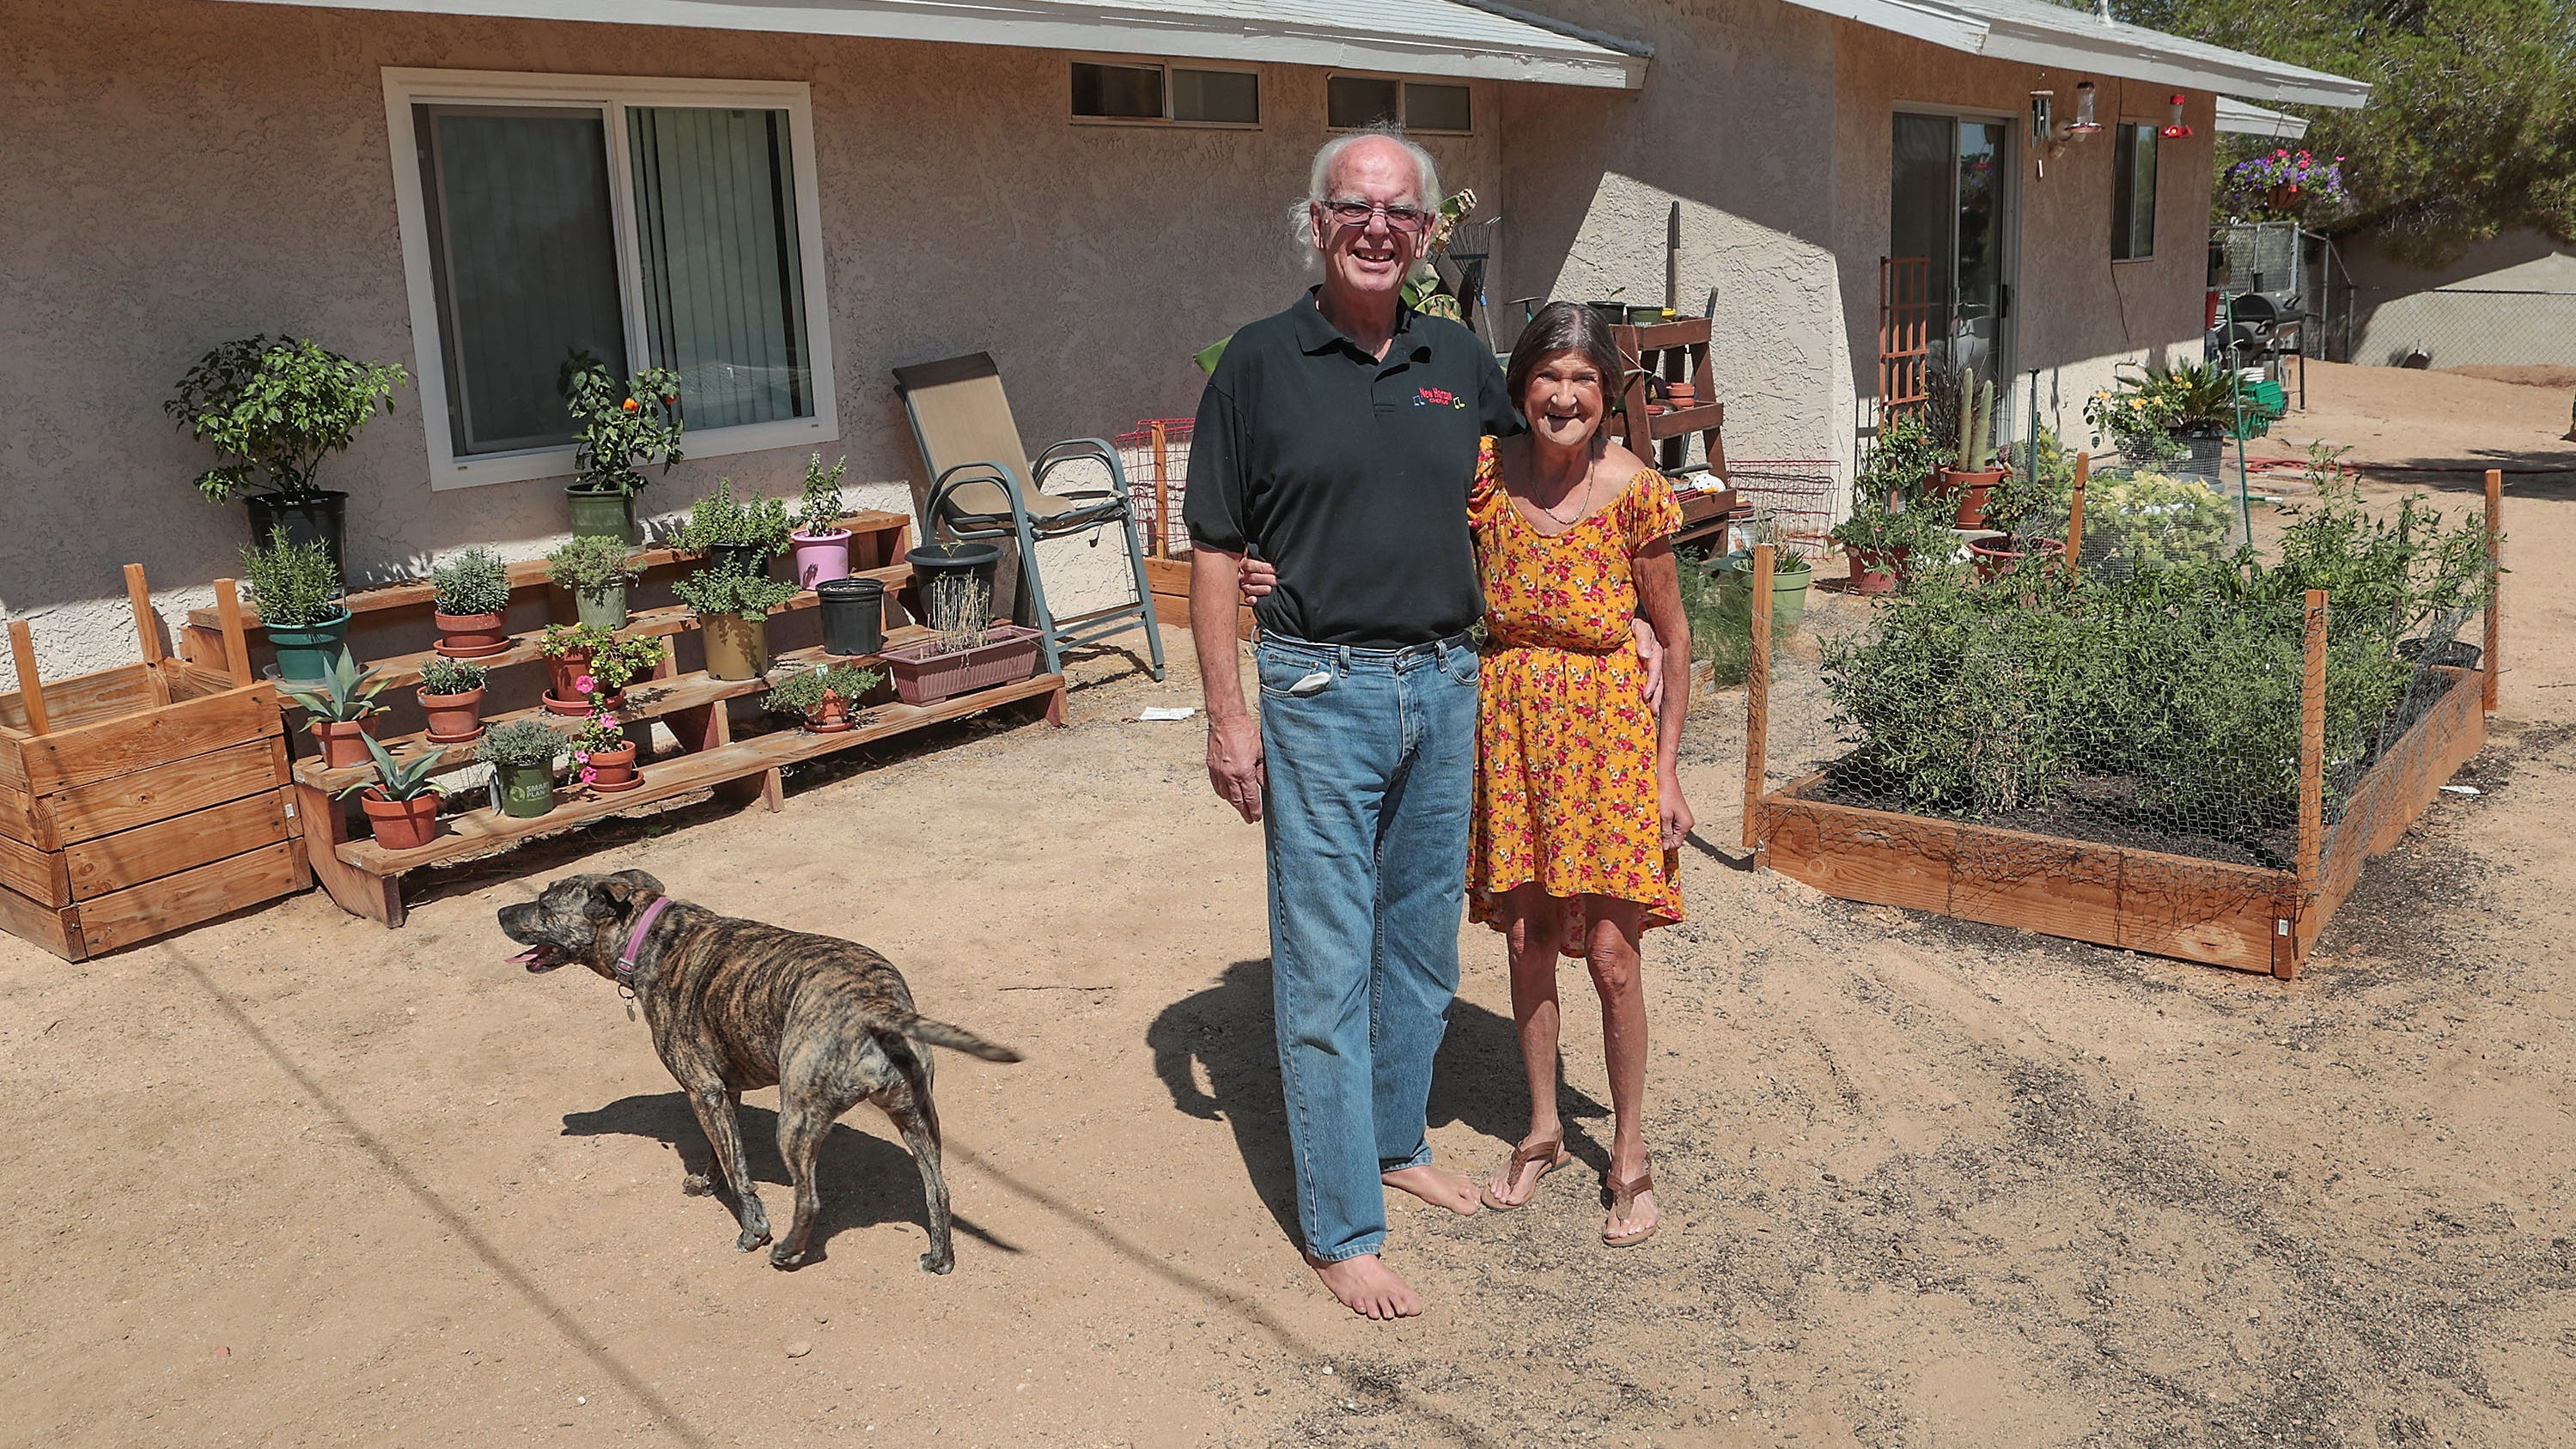 Homelessness in the valley: 'Rapid rehousing' for homeless sometimes anything but